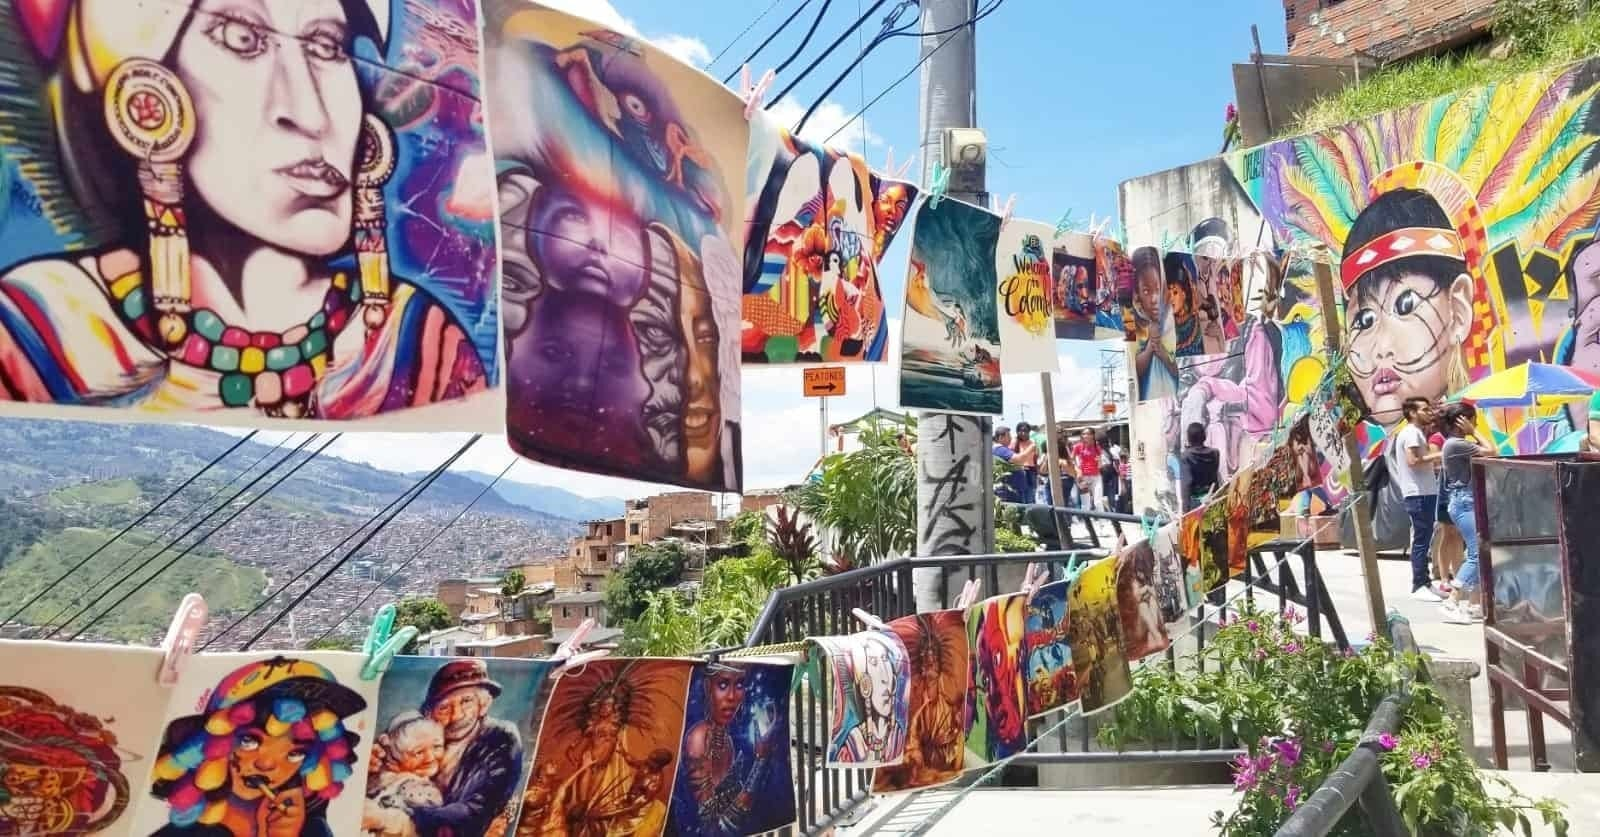 san javier medellin graffiti and selling stalls